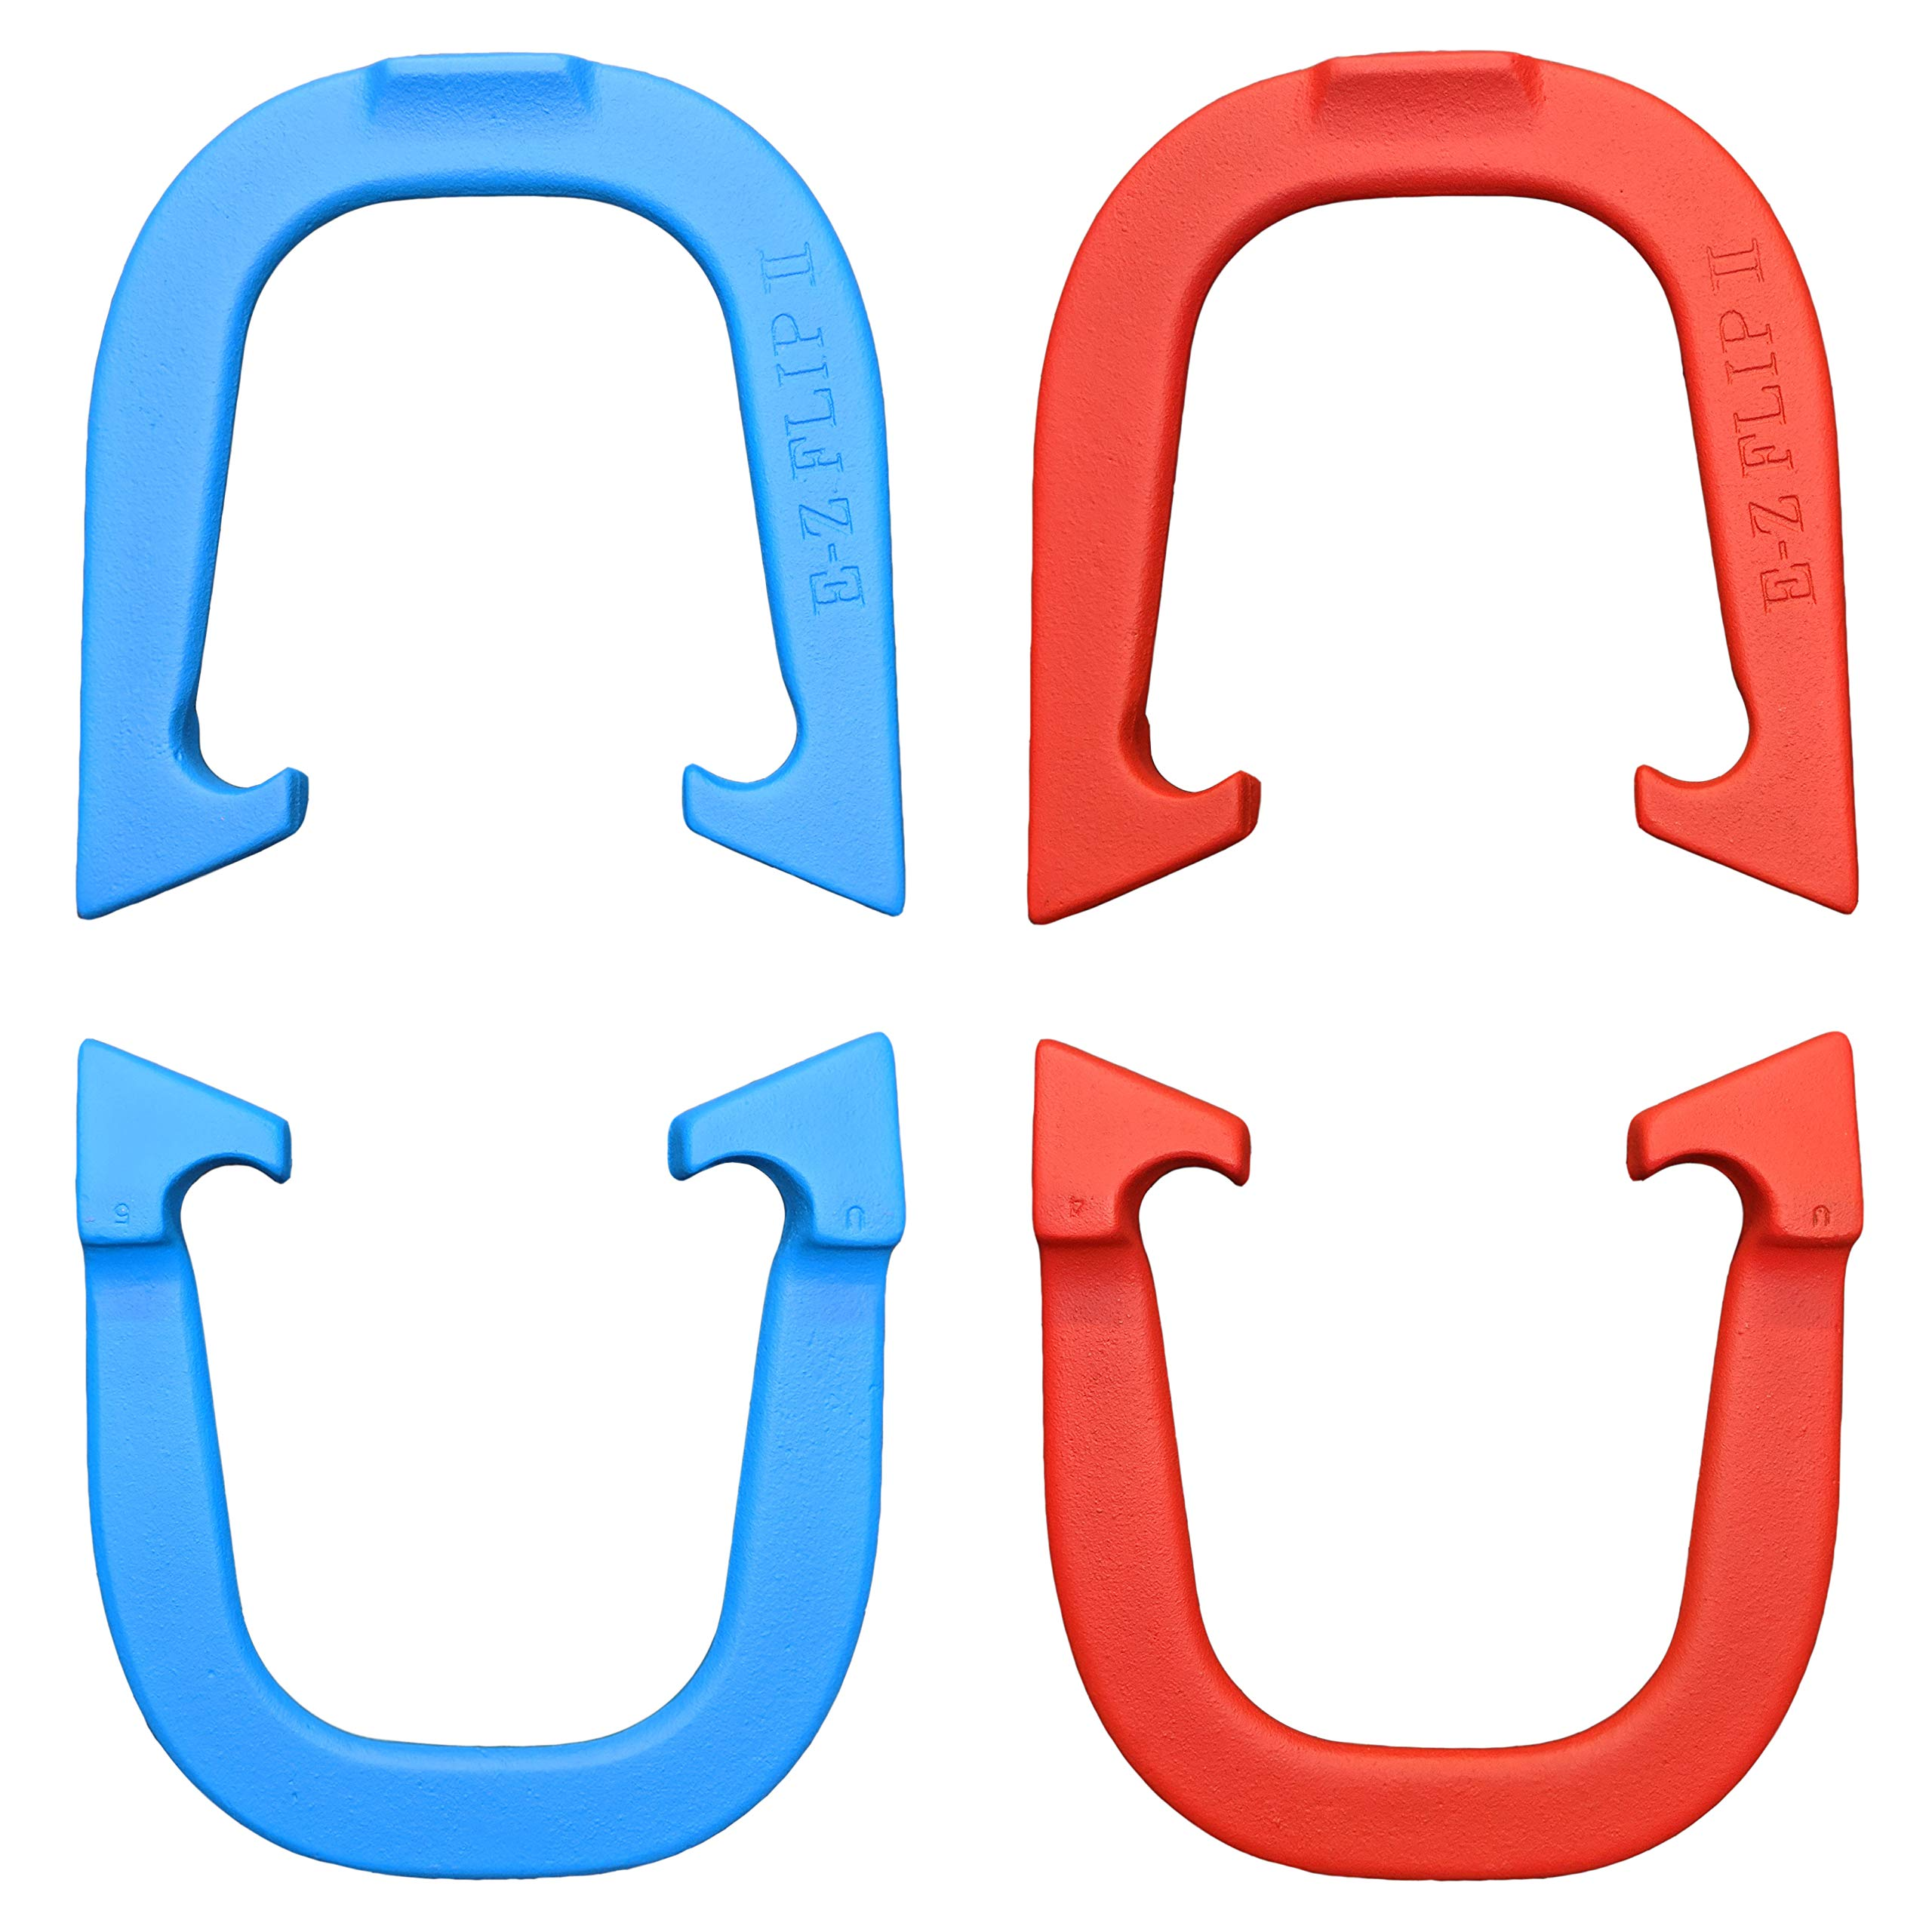 E-Z Flip II Professional Pitching Horseshoes Set- Made in The USA! (Red & Blue- Two Pair Set (4 Shoes))